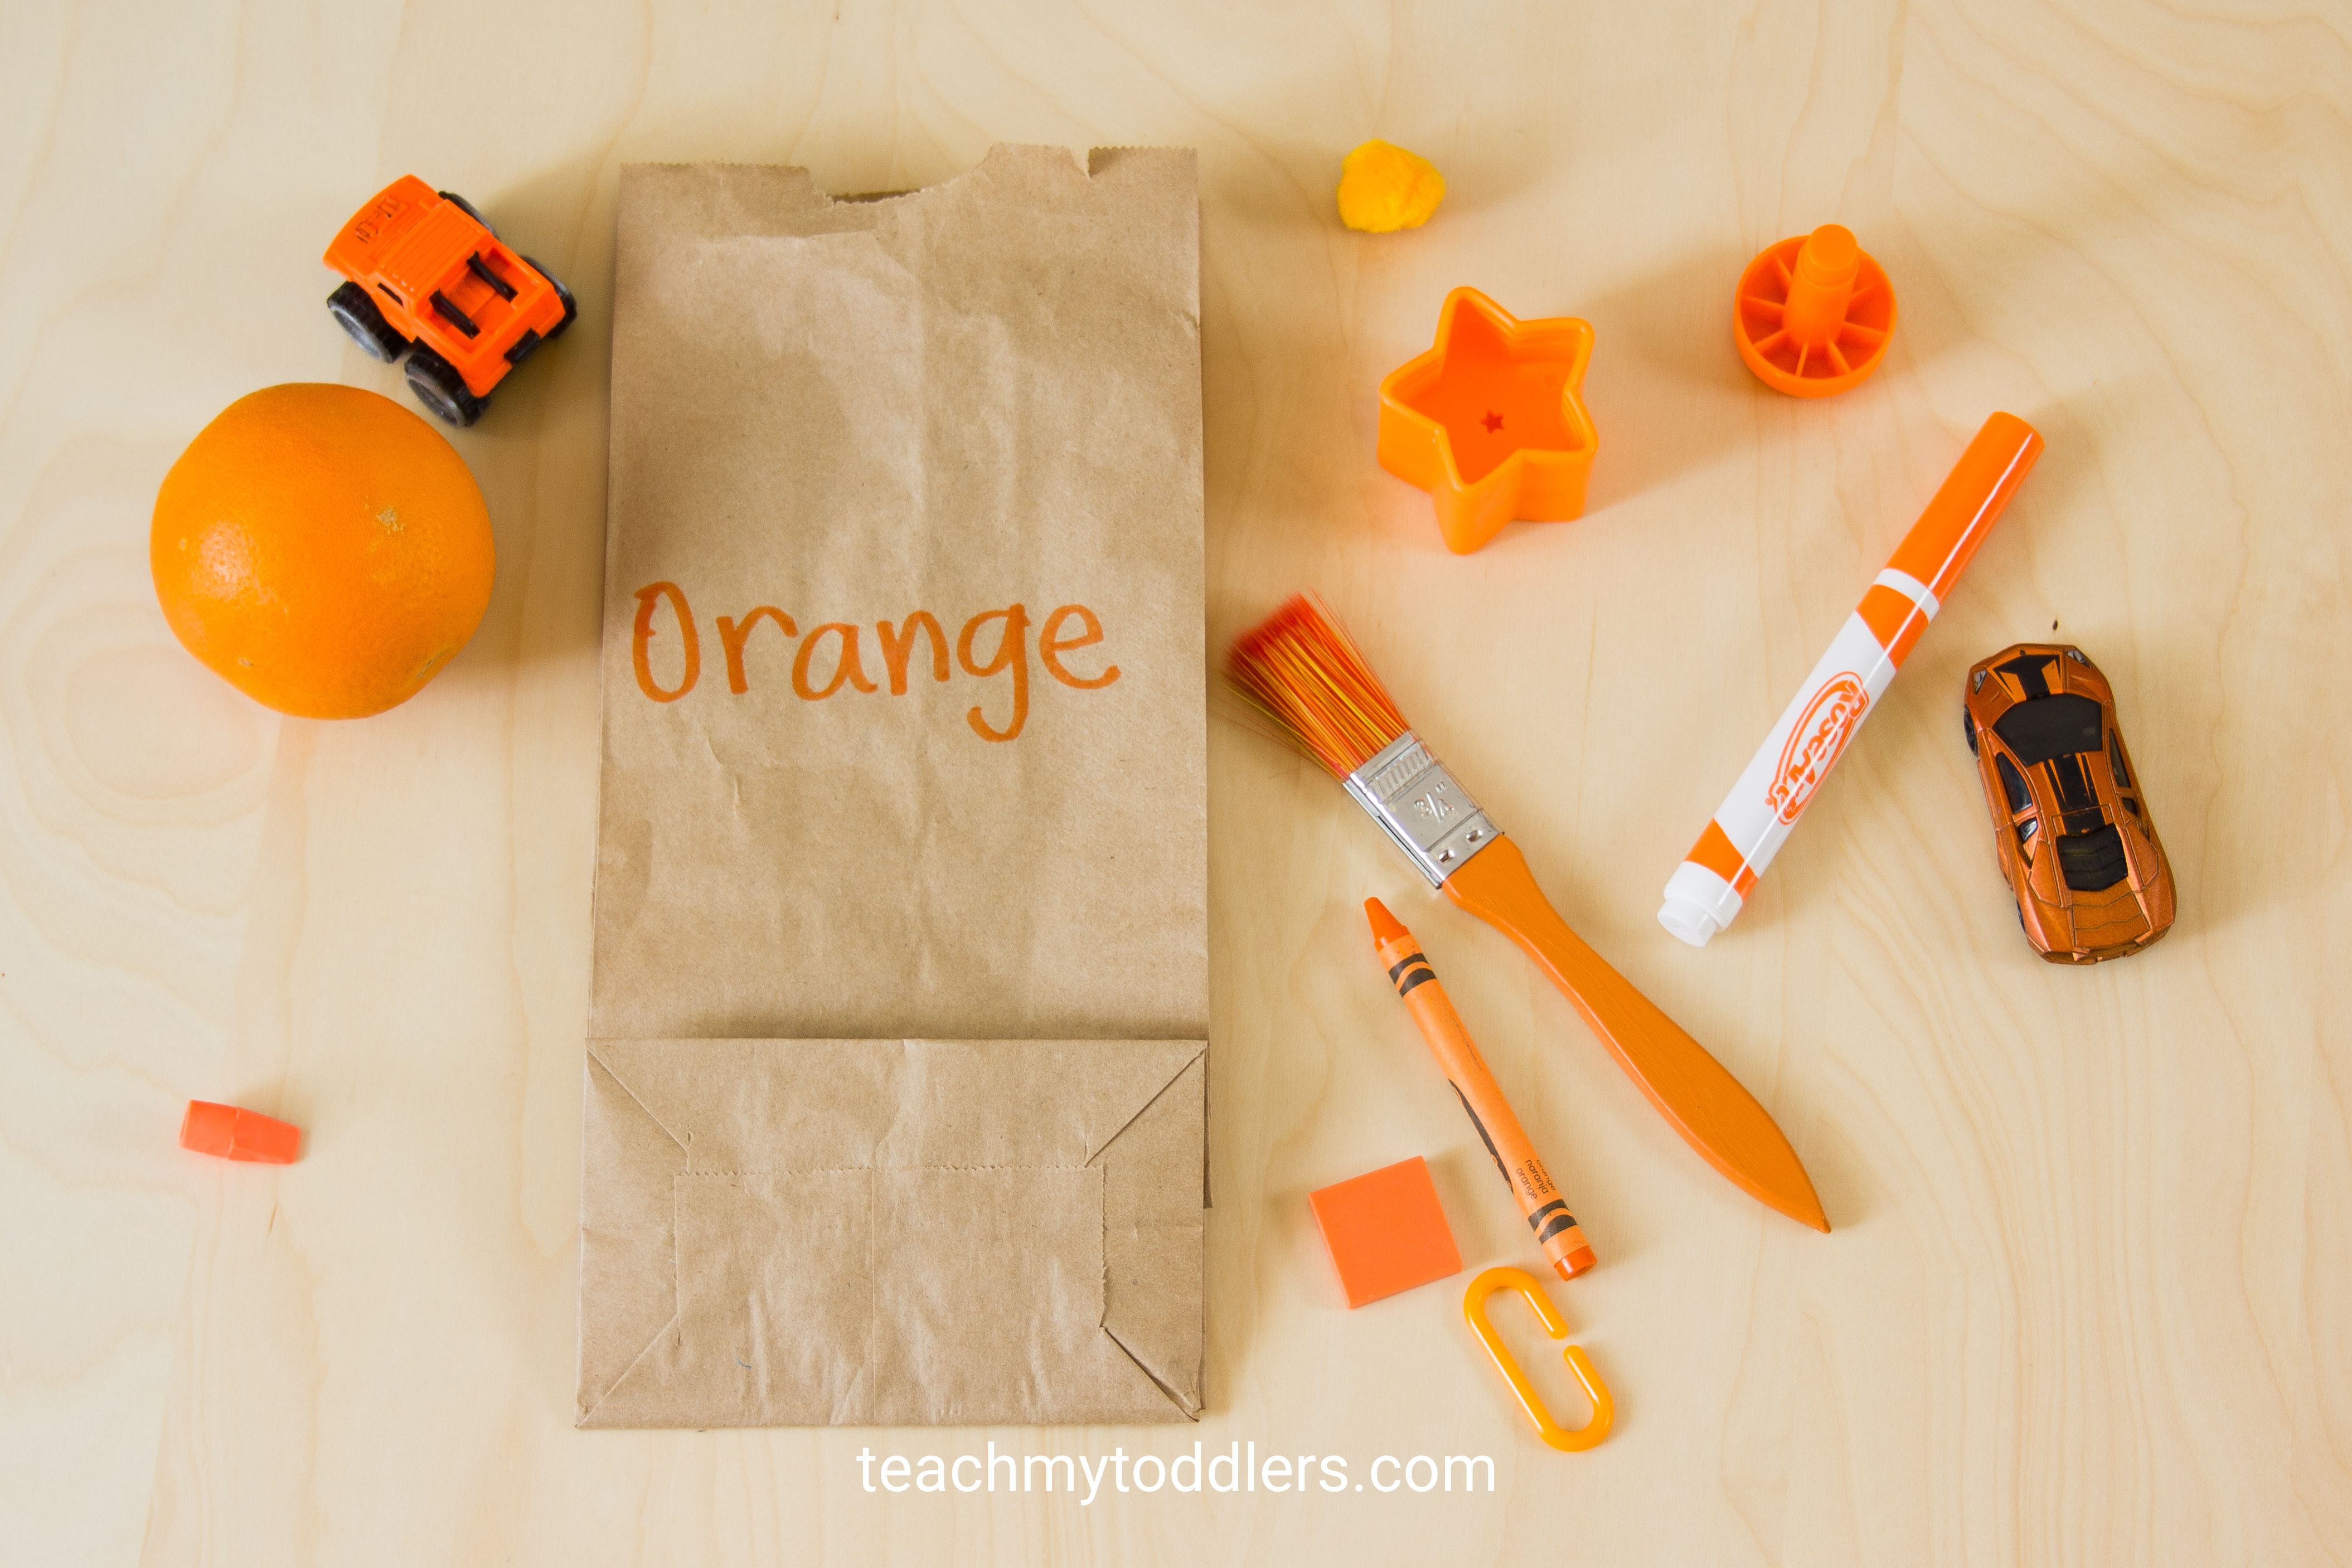 These orange pieces are a great example for the color scavenger hunt to teach toddlers colors